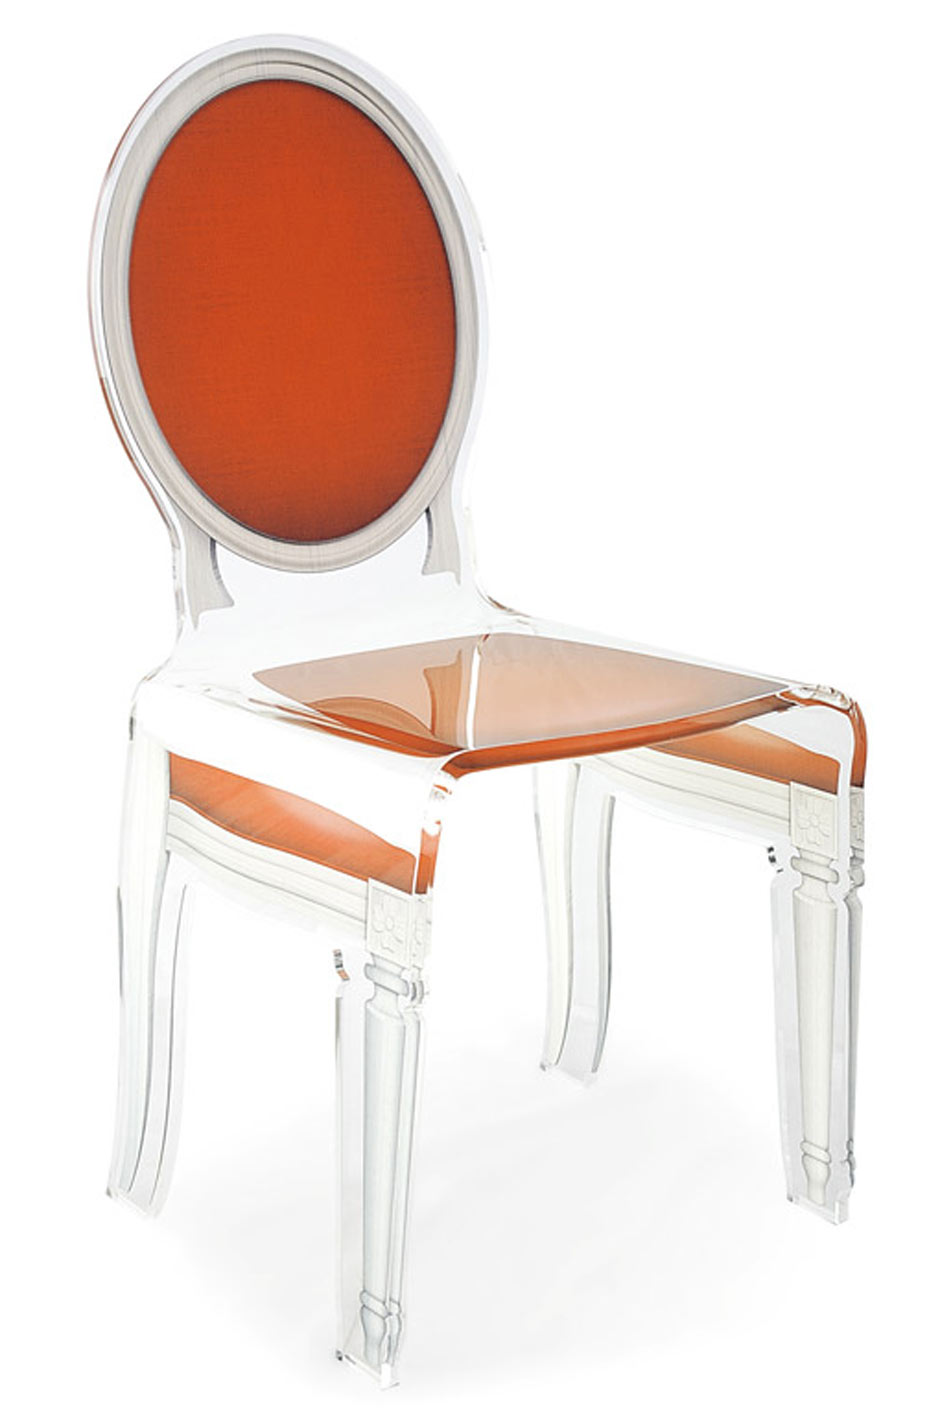 chaise m daillon baroque en plexiglas sixteen motif orange acrila sp cialiste du plexiglas. Black Bedroom Furniture Sets. Home Design Ideas